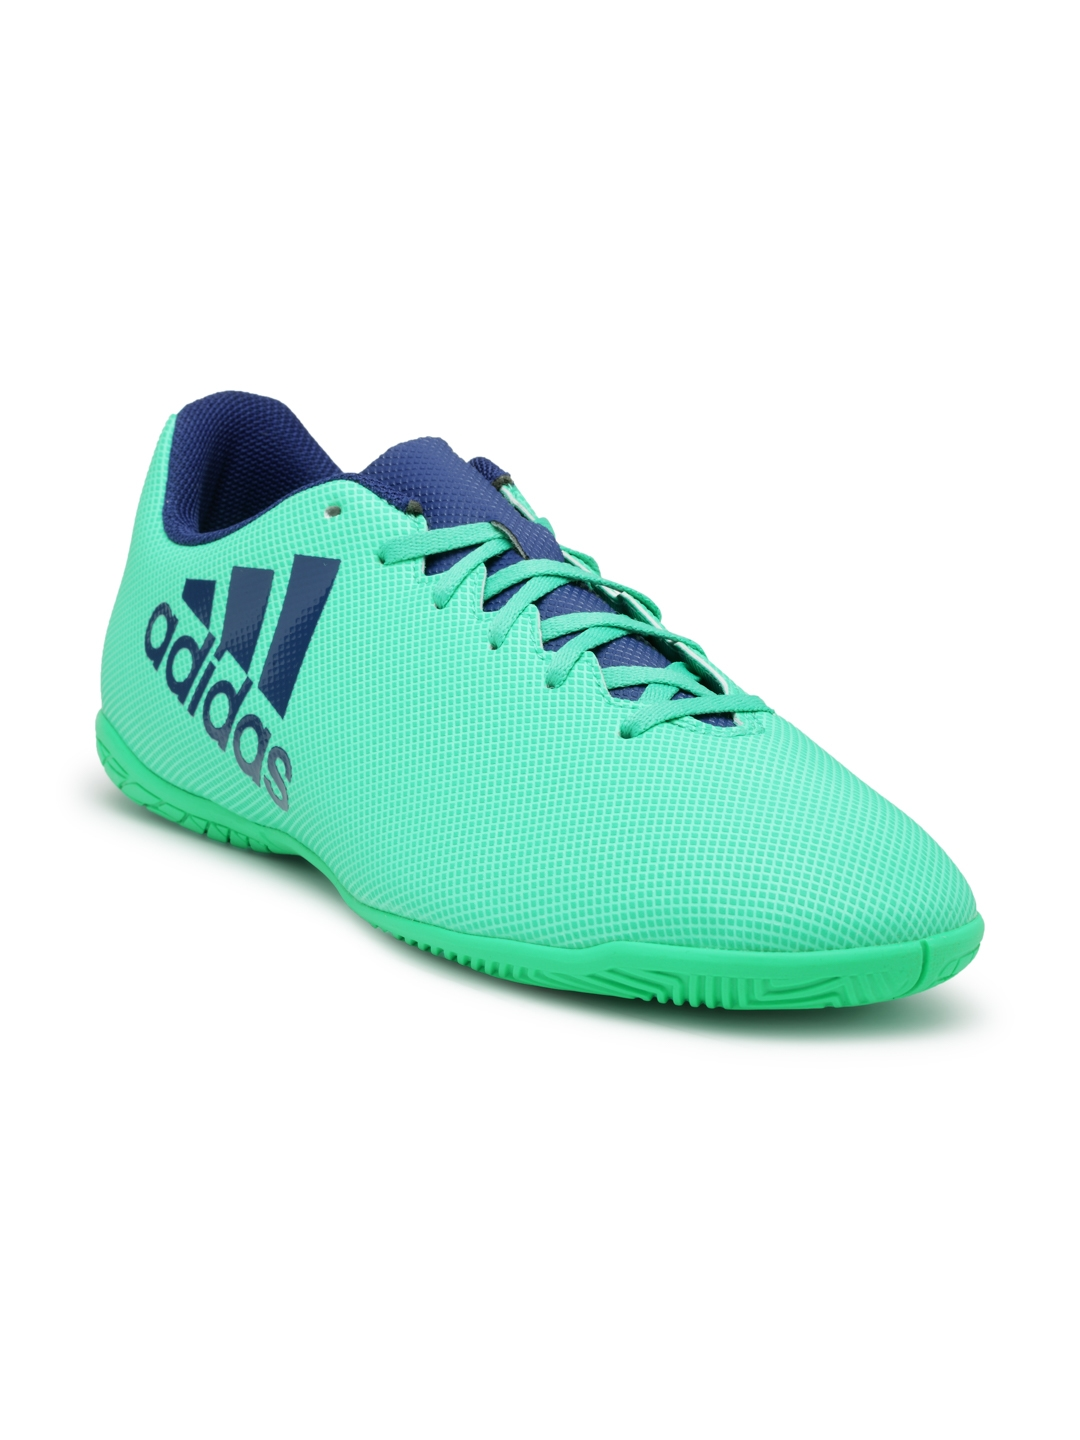 official photos 682c9 0617f ADIDAS Men Sea Green X TANGO 17.4 Indoor Football Shoes